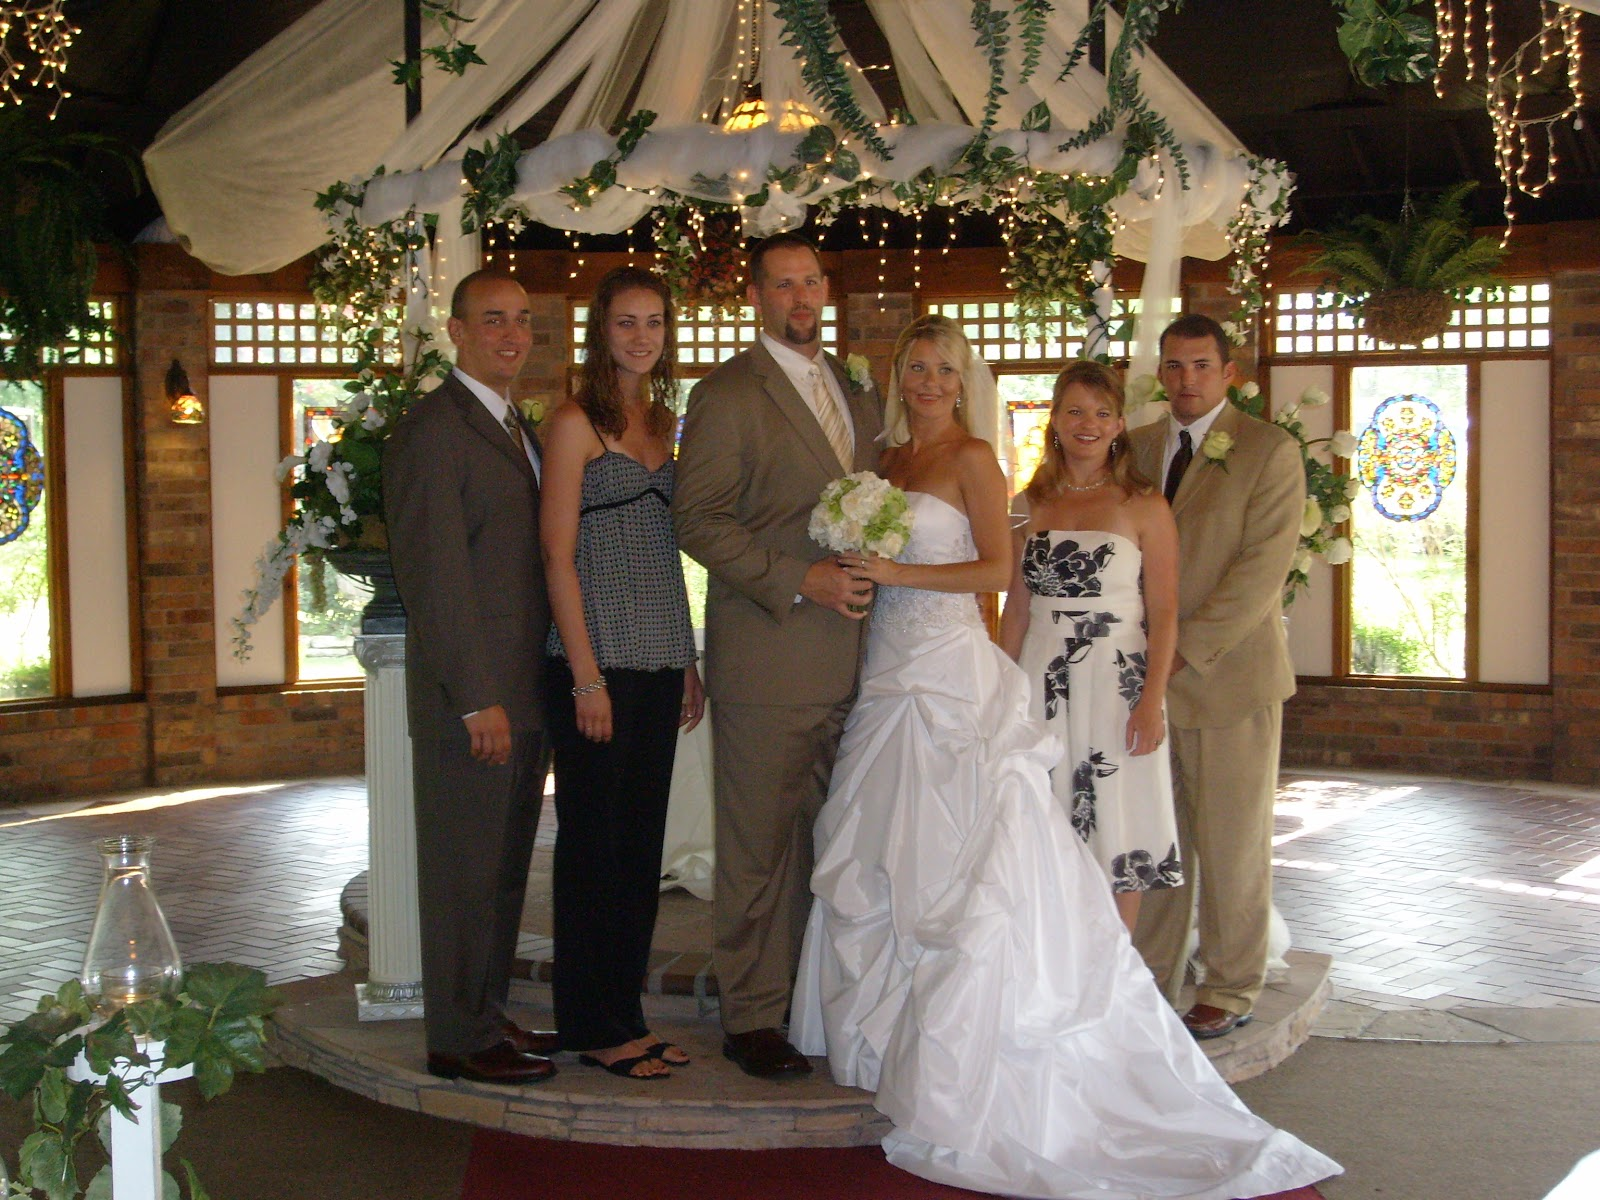 Beths Wedding - S7300173.JPG